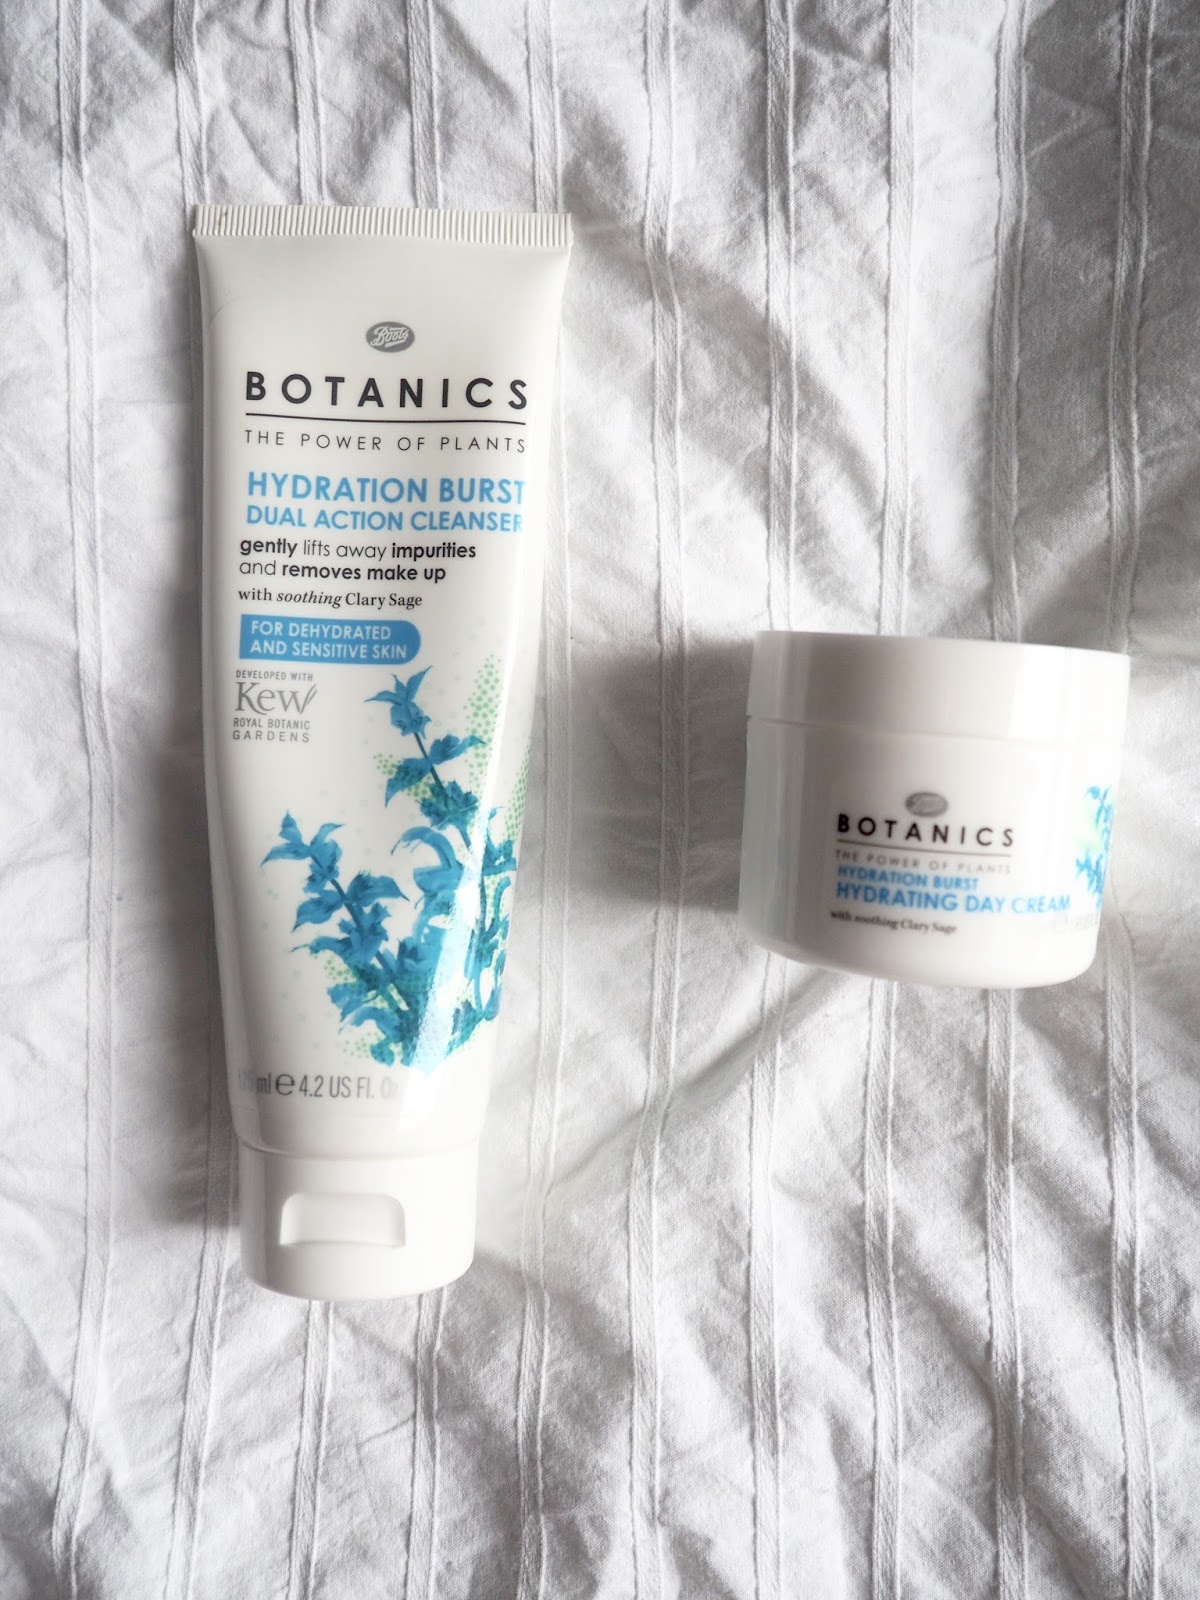 Boots Botanics review